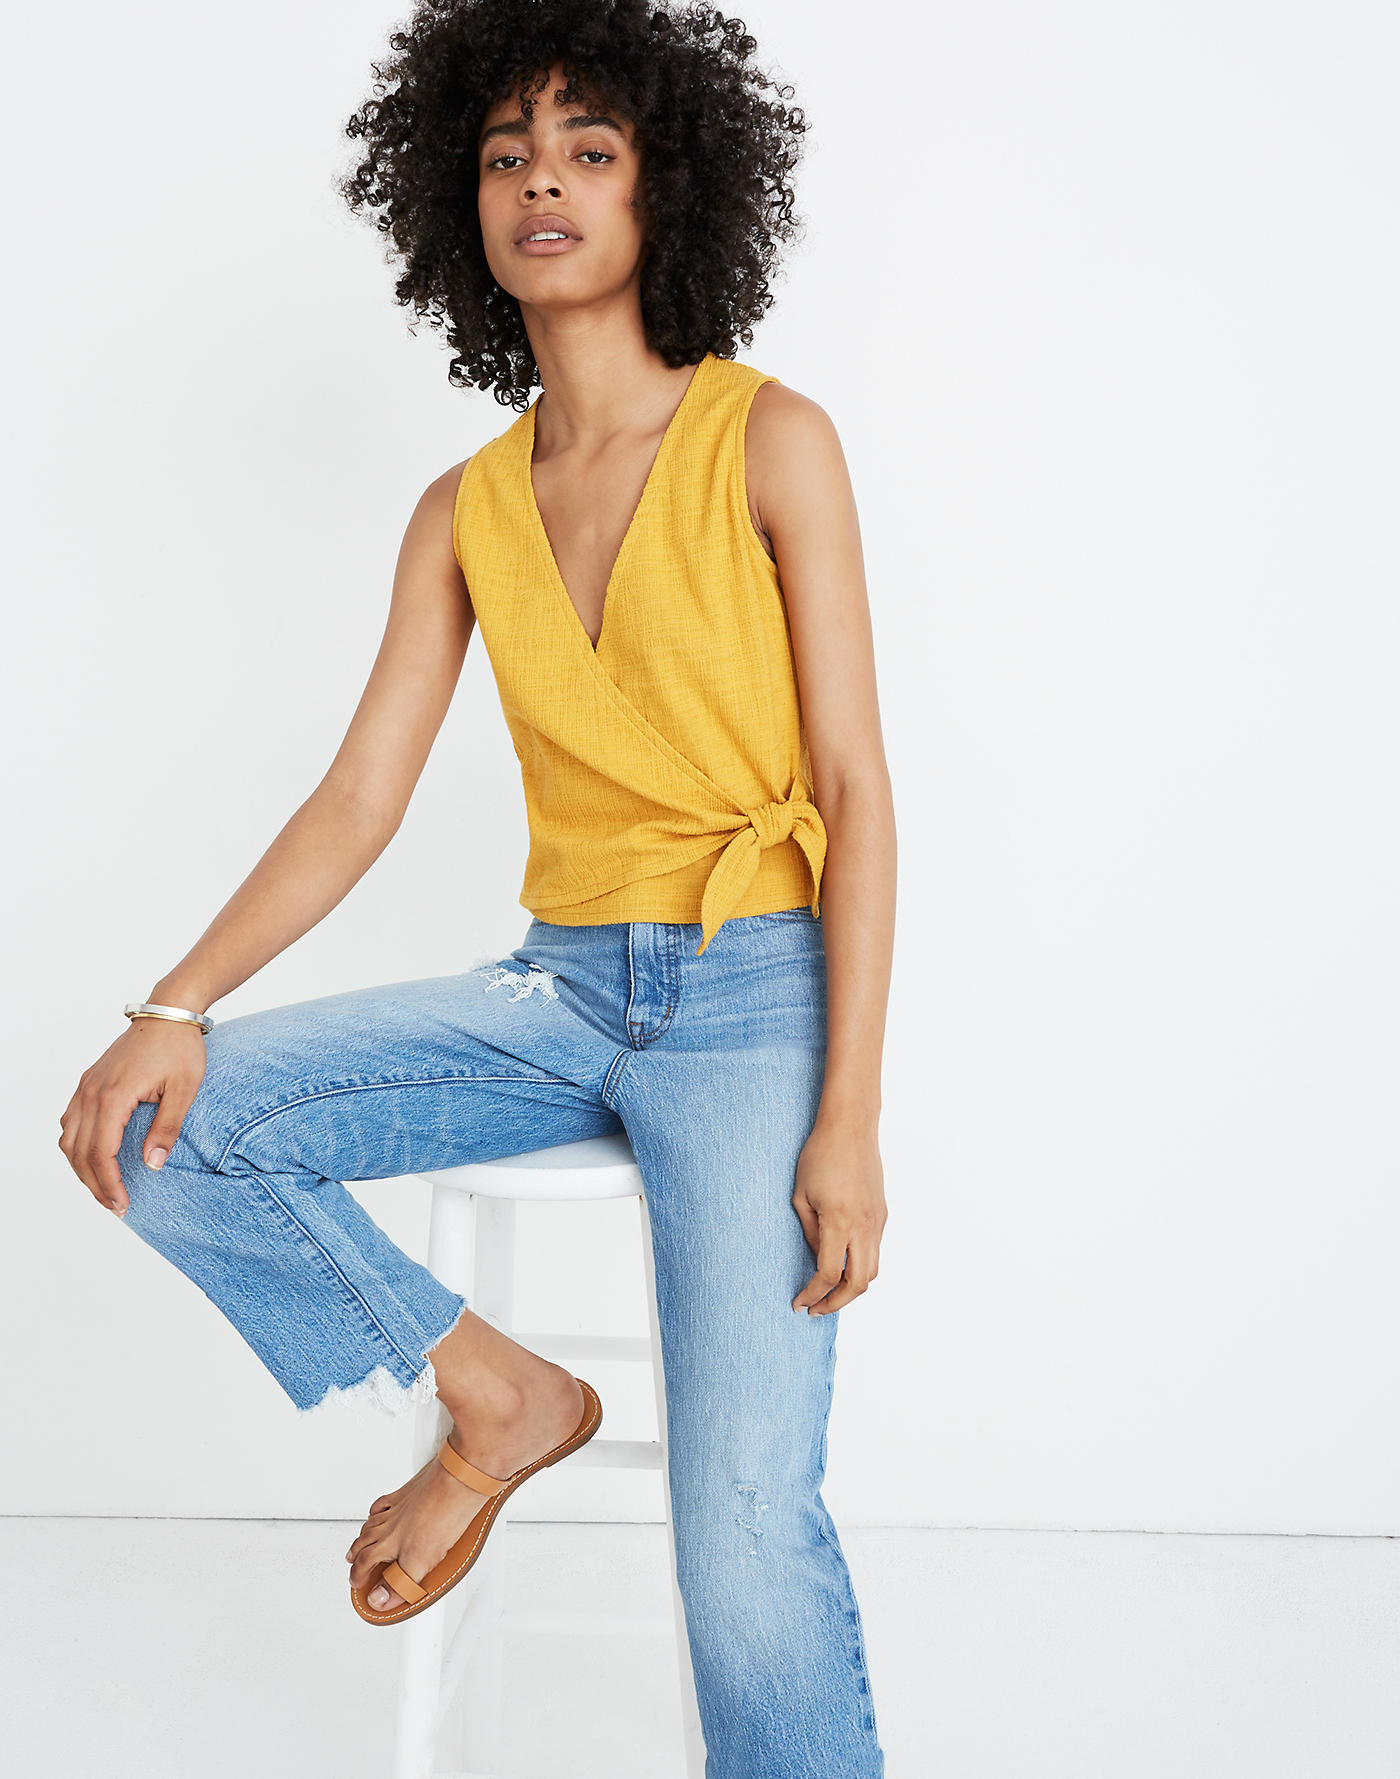 Model wearing the v-neck tank with a wrap around the front in yellow